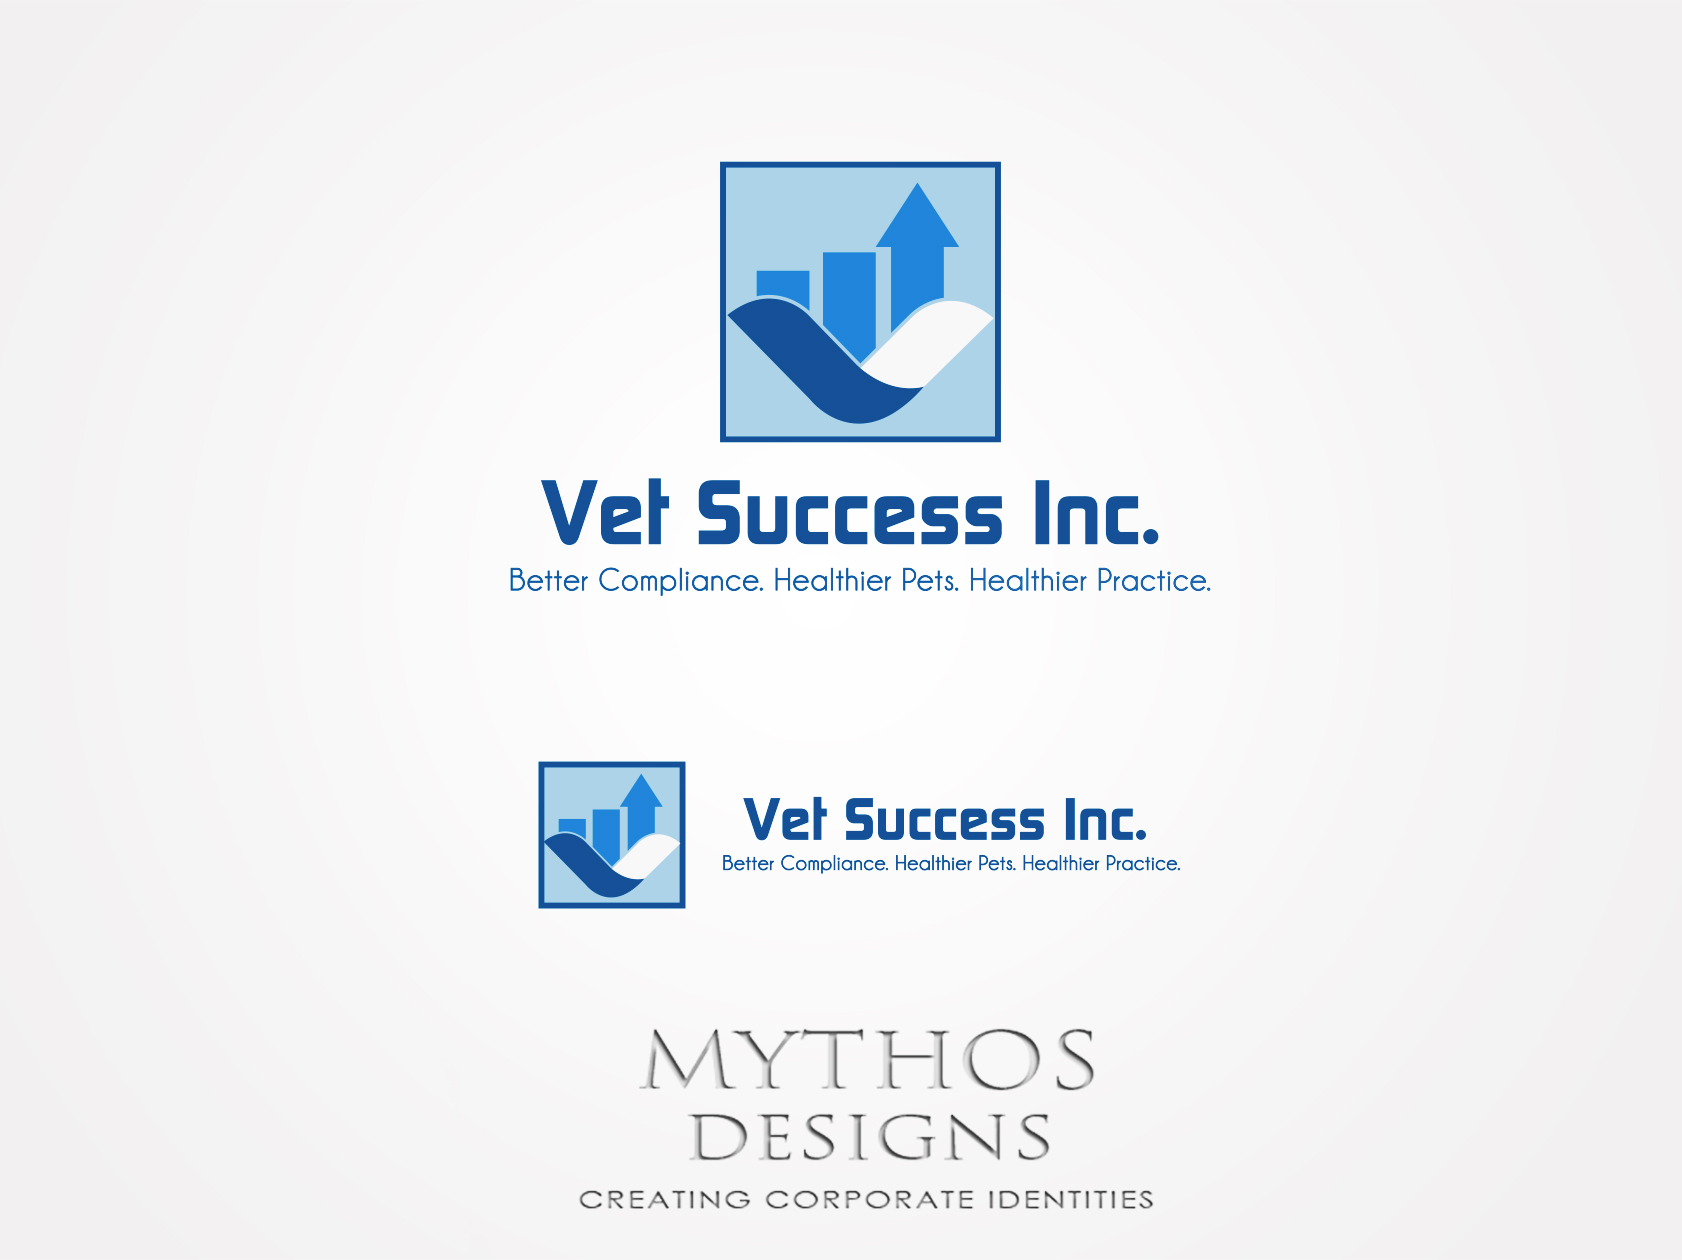 Logo Design by Mythos Designs - Entry No. 112 in the Logo Design Contest Imaginative Logo Design for Vet Success Inc..